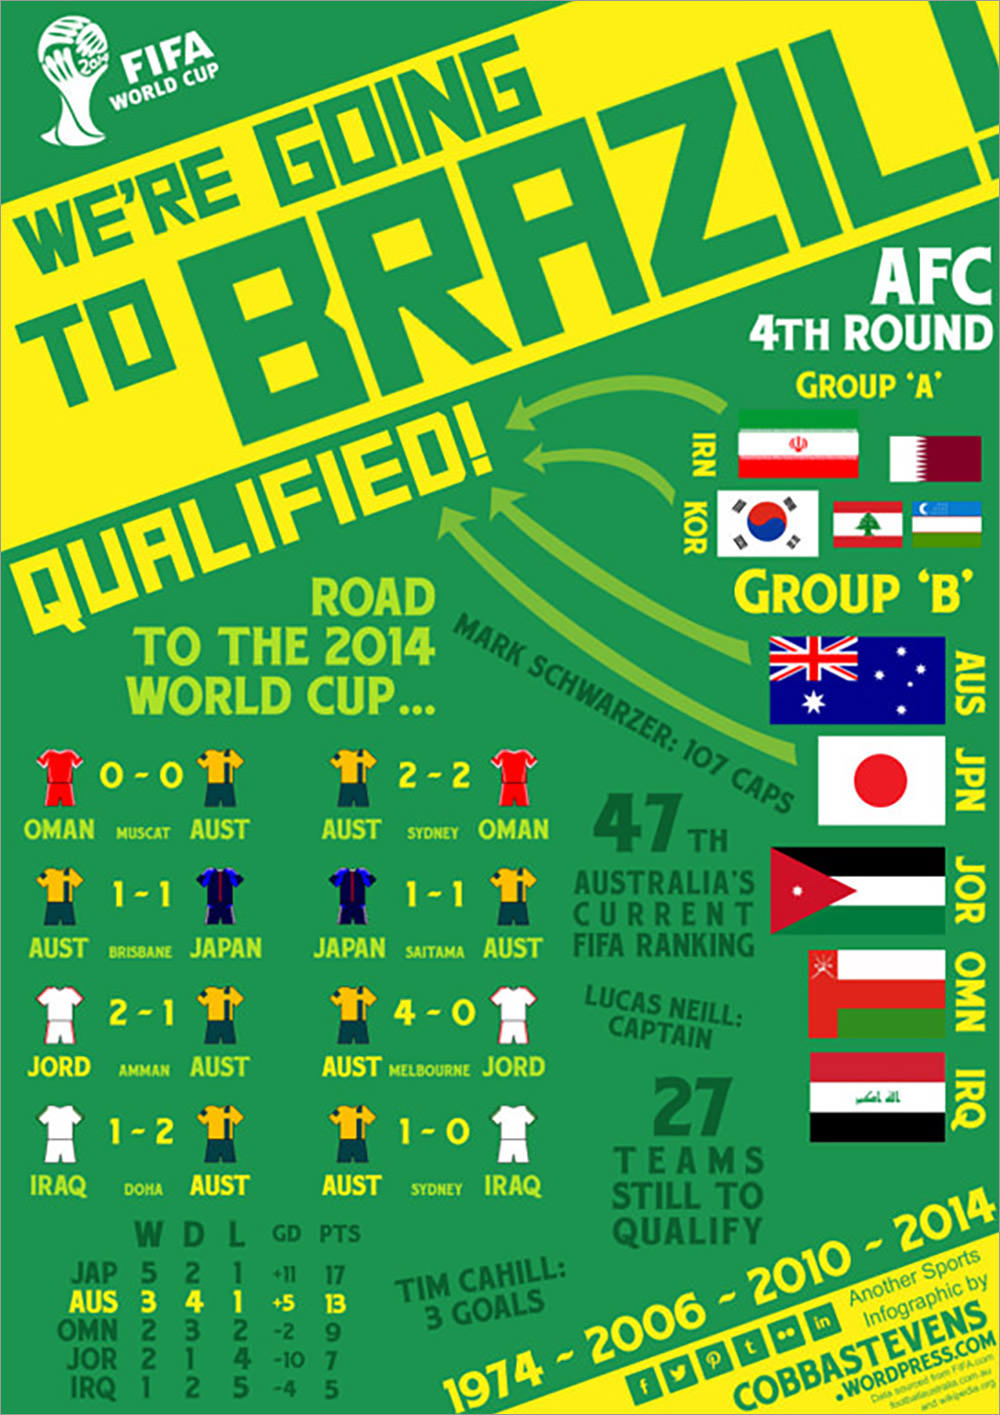 We're Going To Brazil